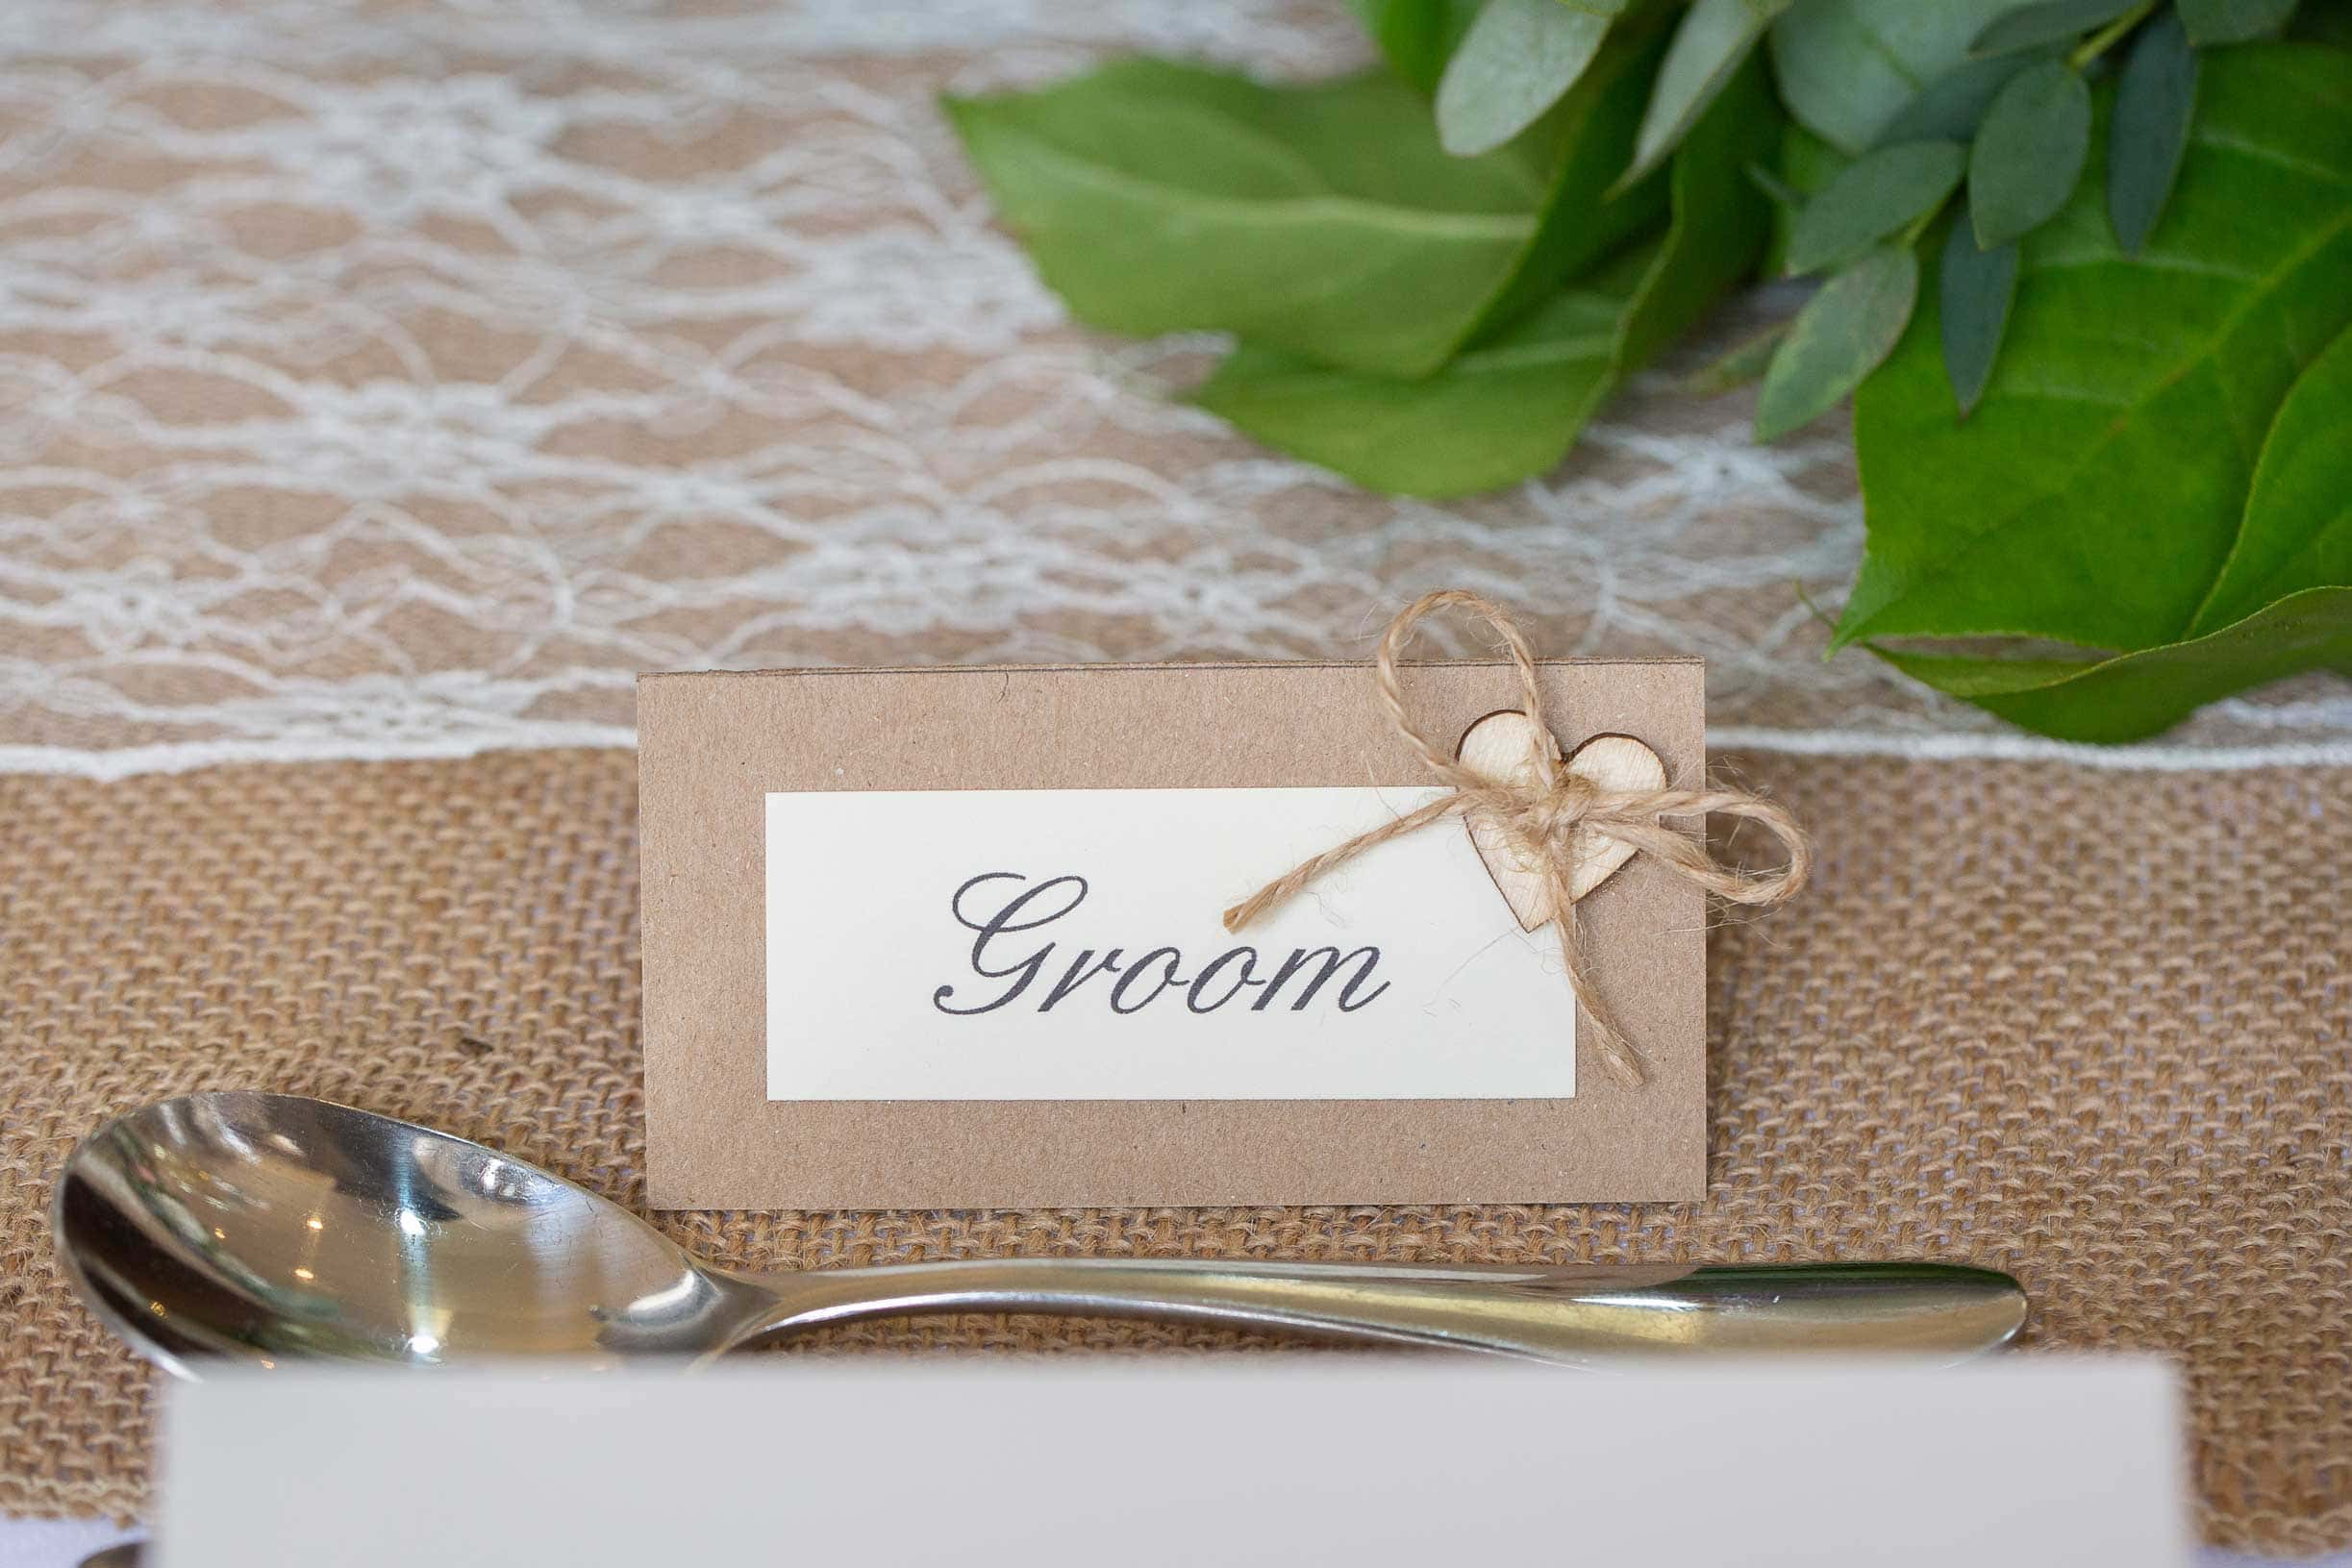 photo of the Grooms name card